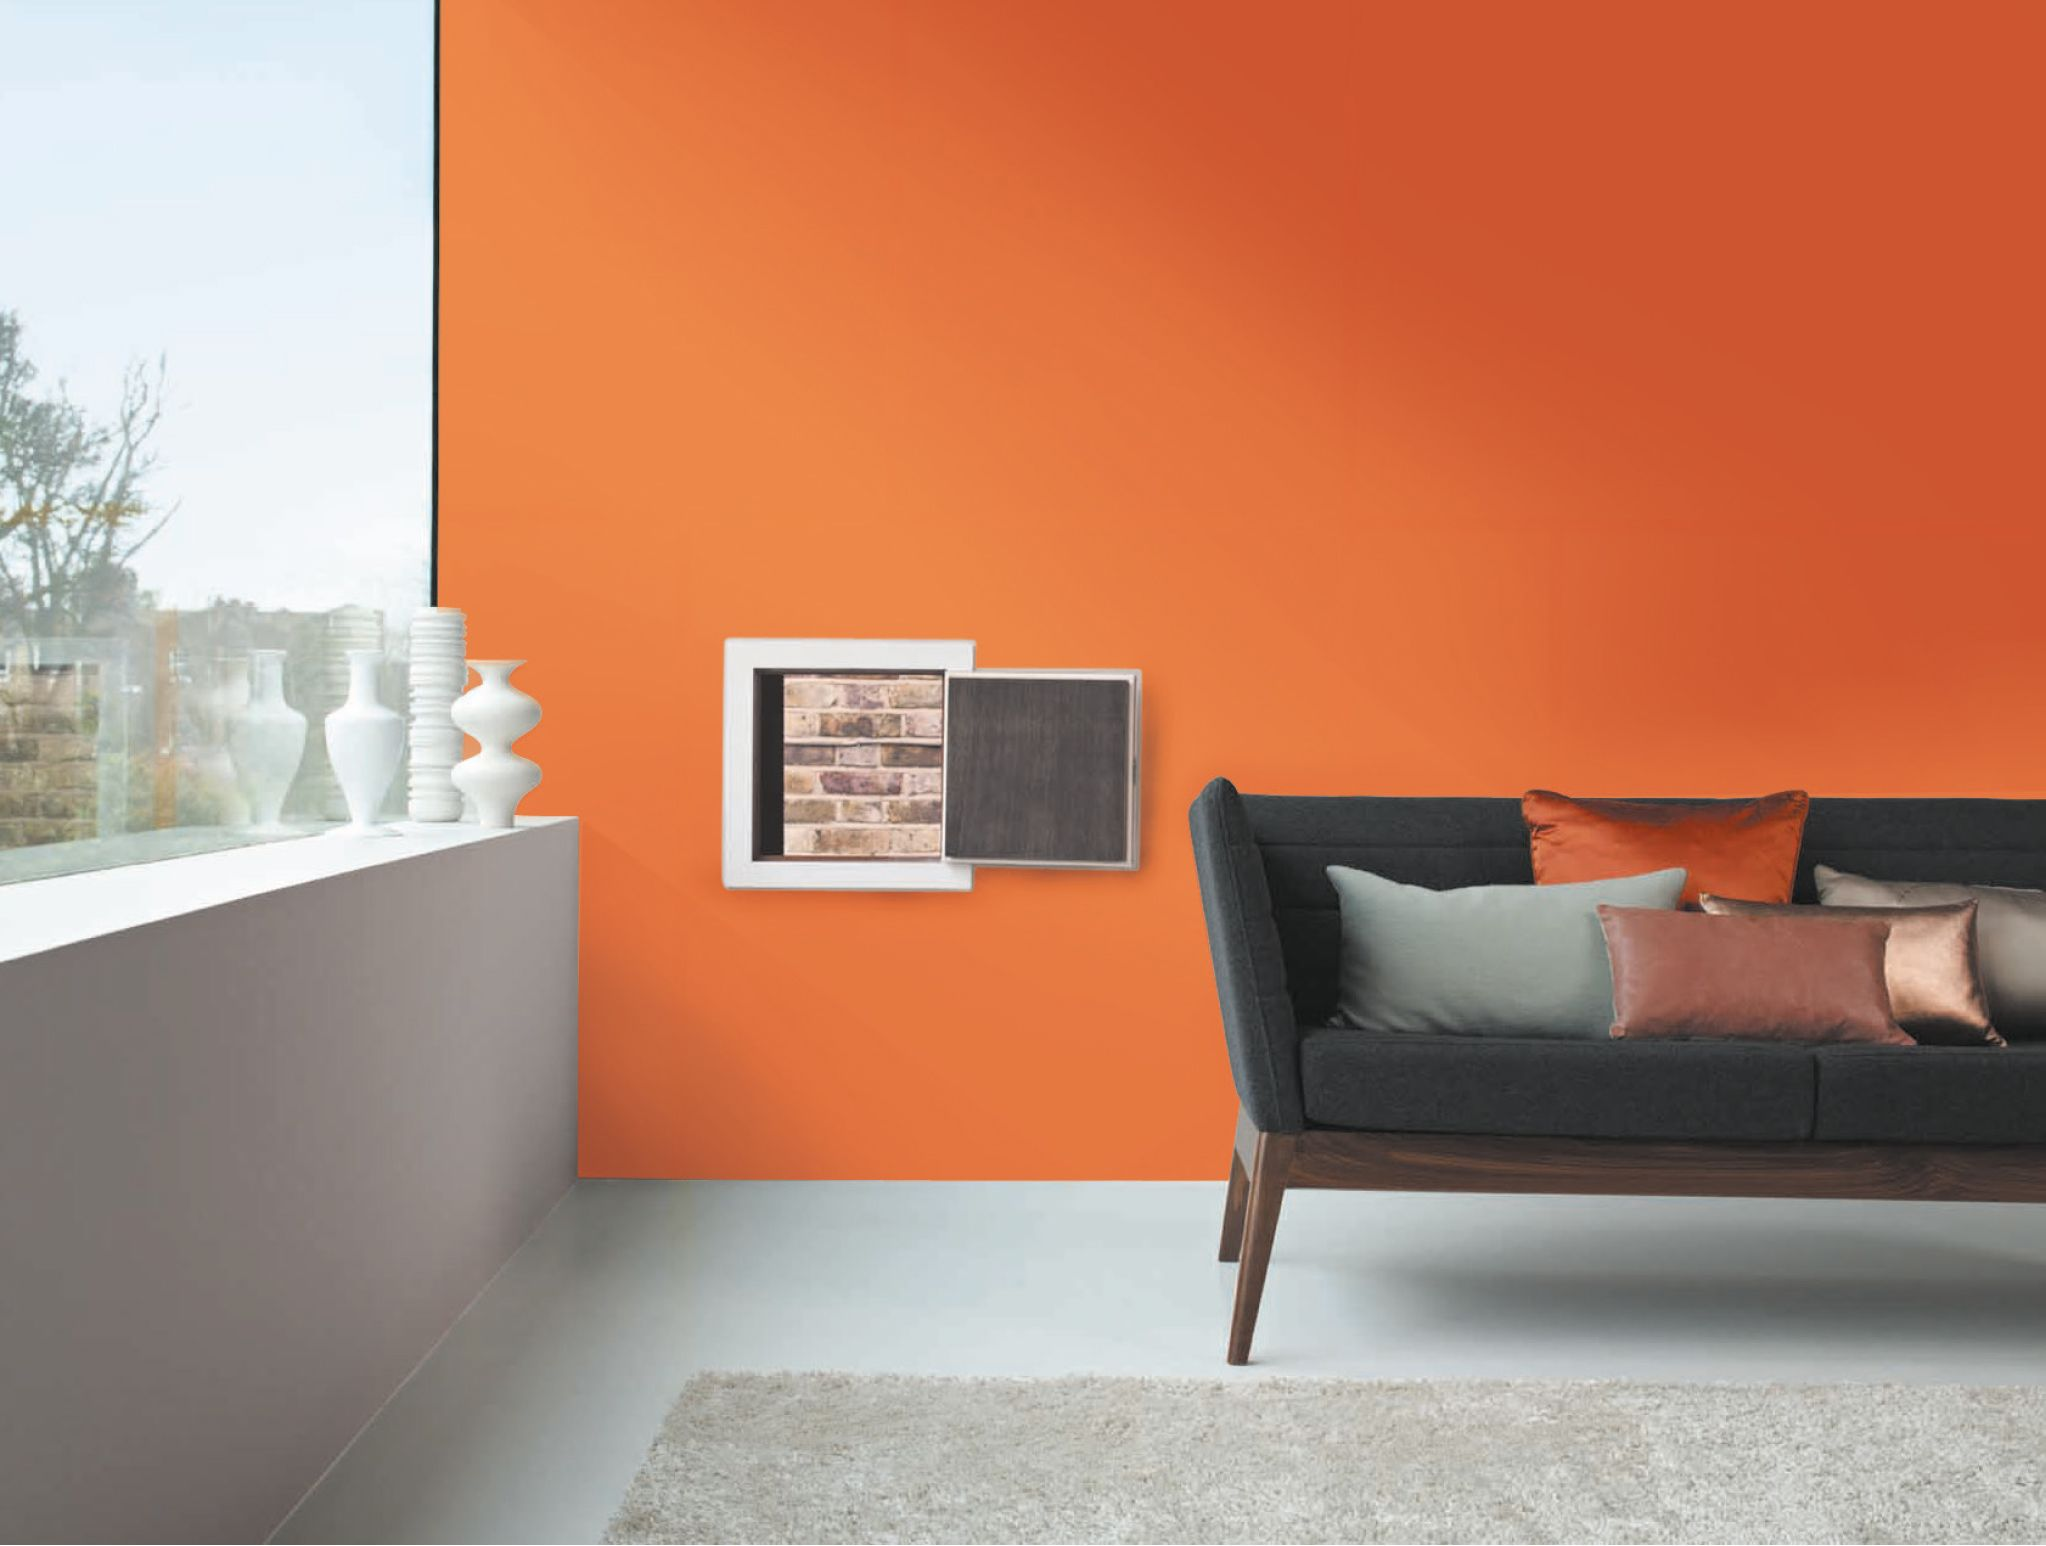 Couleur de l 39 ann e 2015 dulux valentine l 39 orange confite - Idee couleur mur salon ...